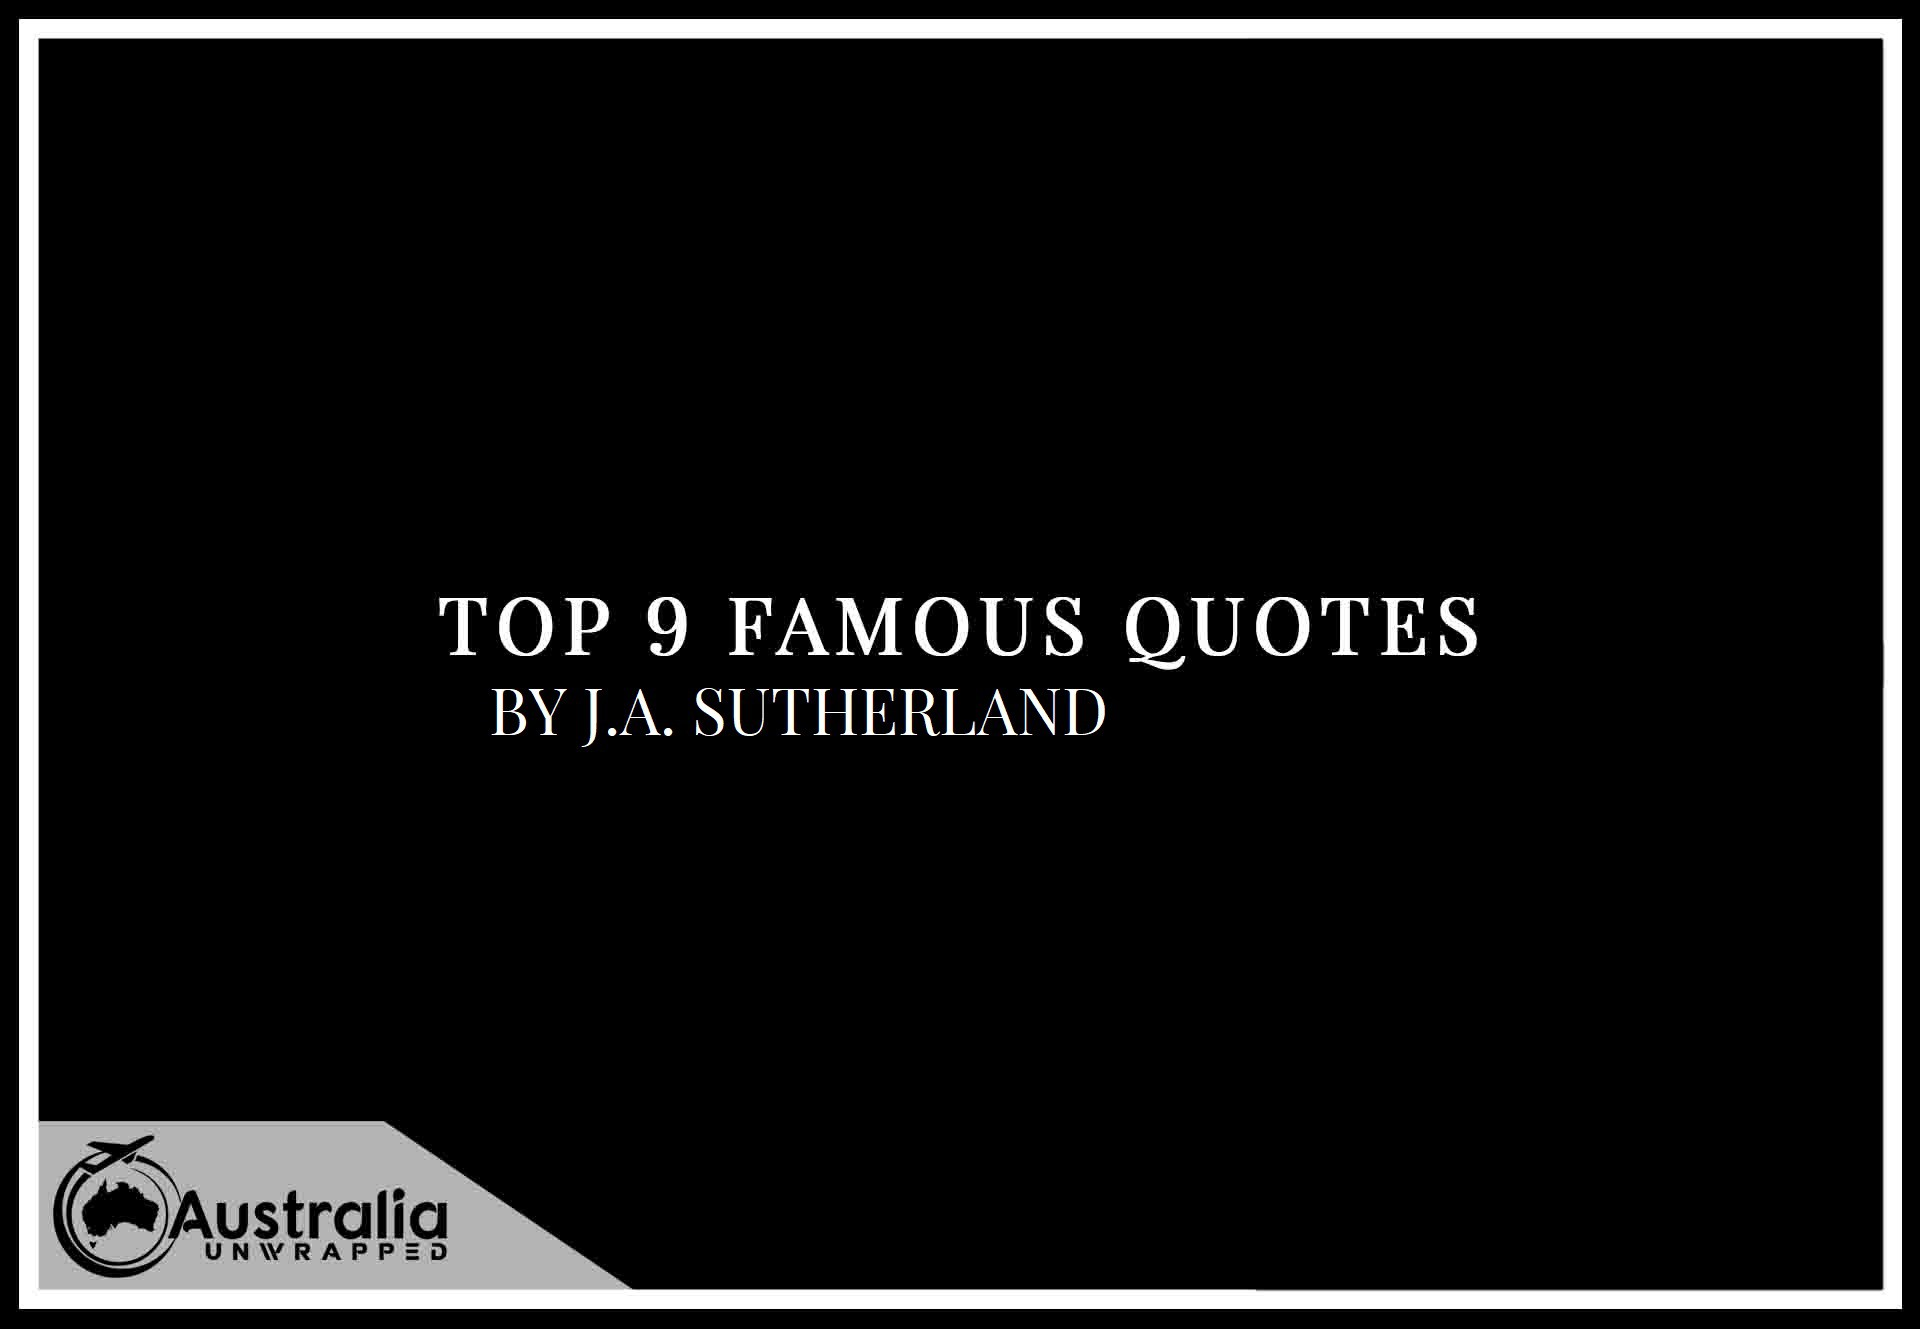 Top 9 Famous Quotes by Author J.A. Sutherland